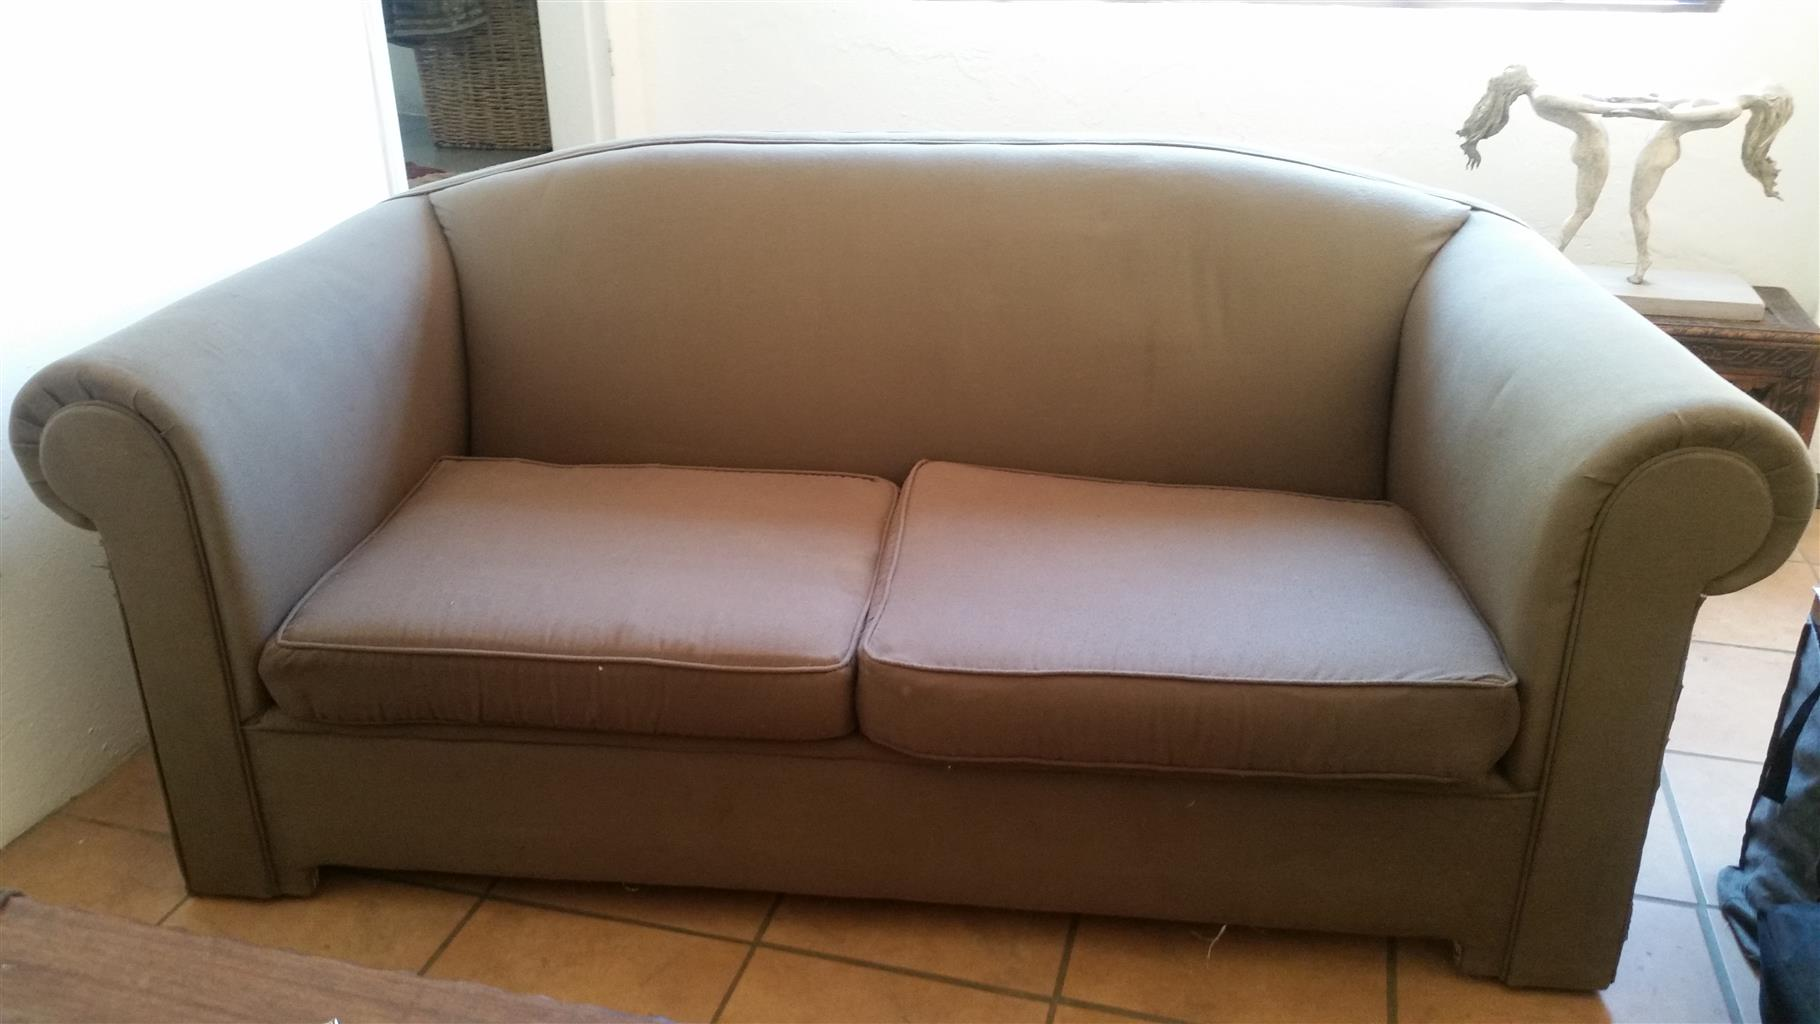 2 x 2-SEATER COUCHES